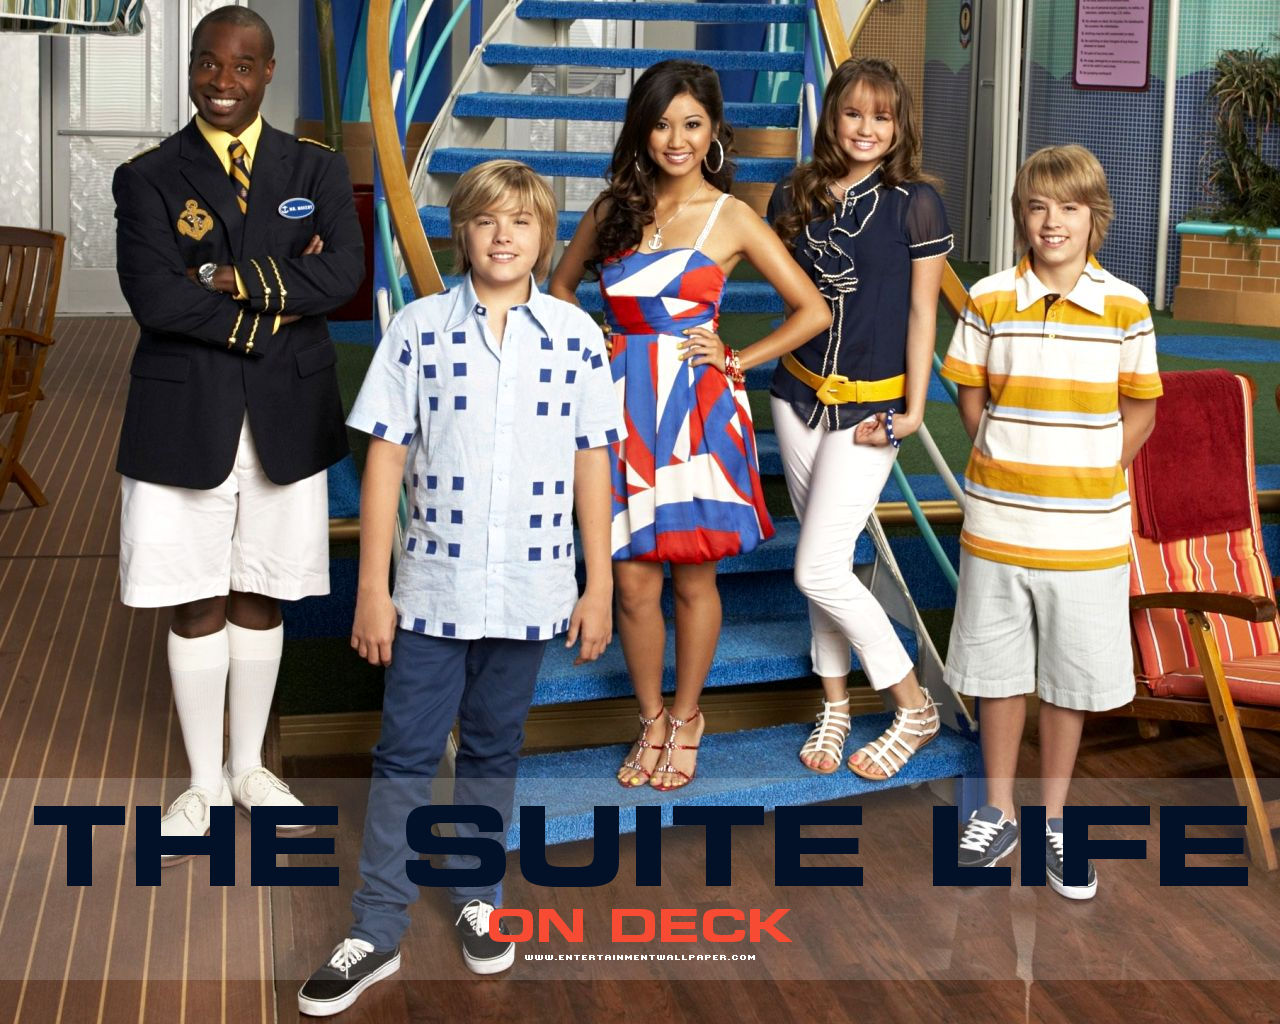 Zack and cody quotes cody in hotel hangout